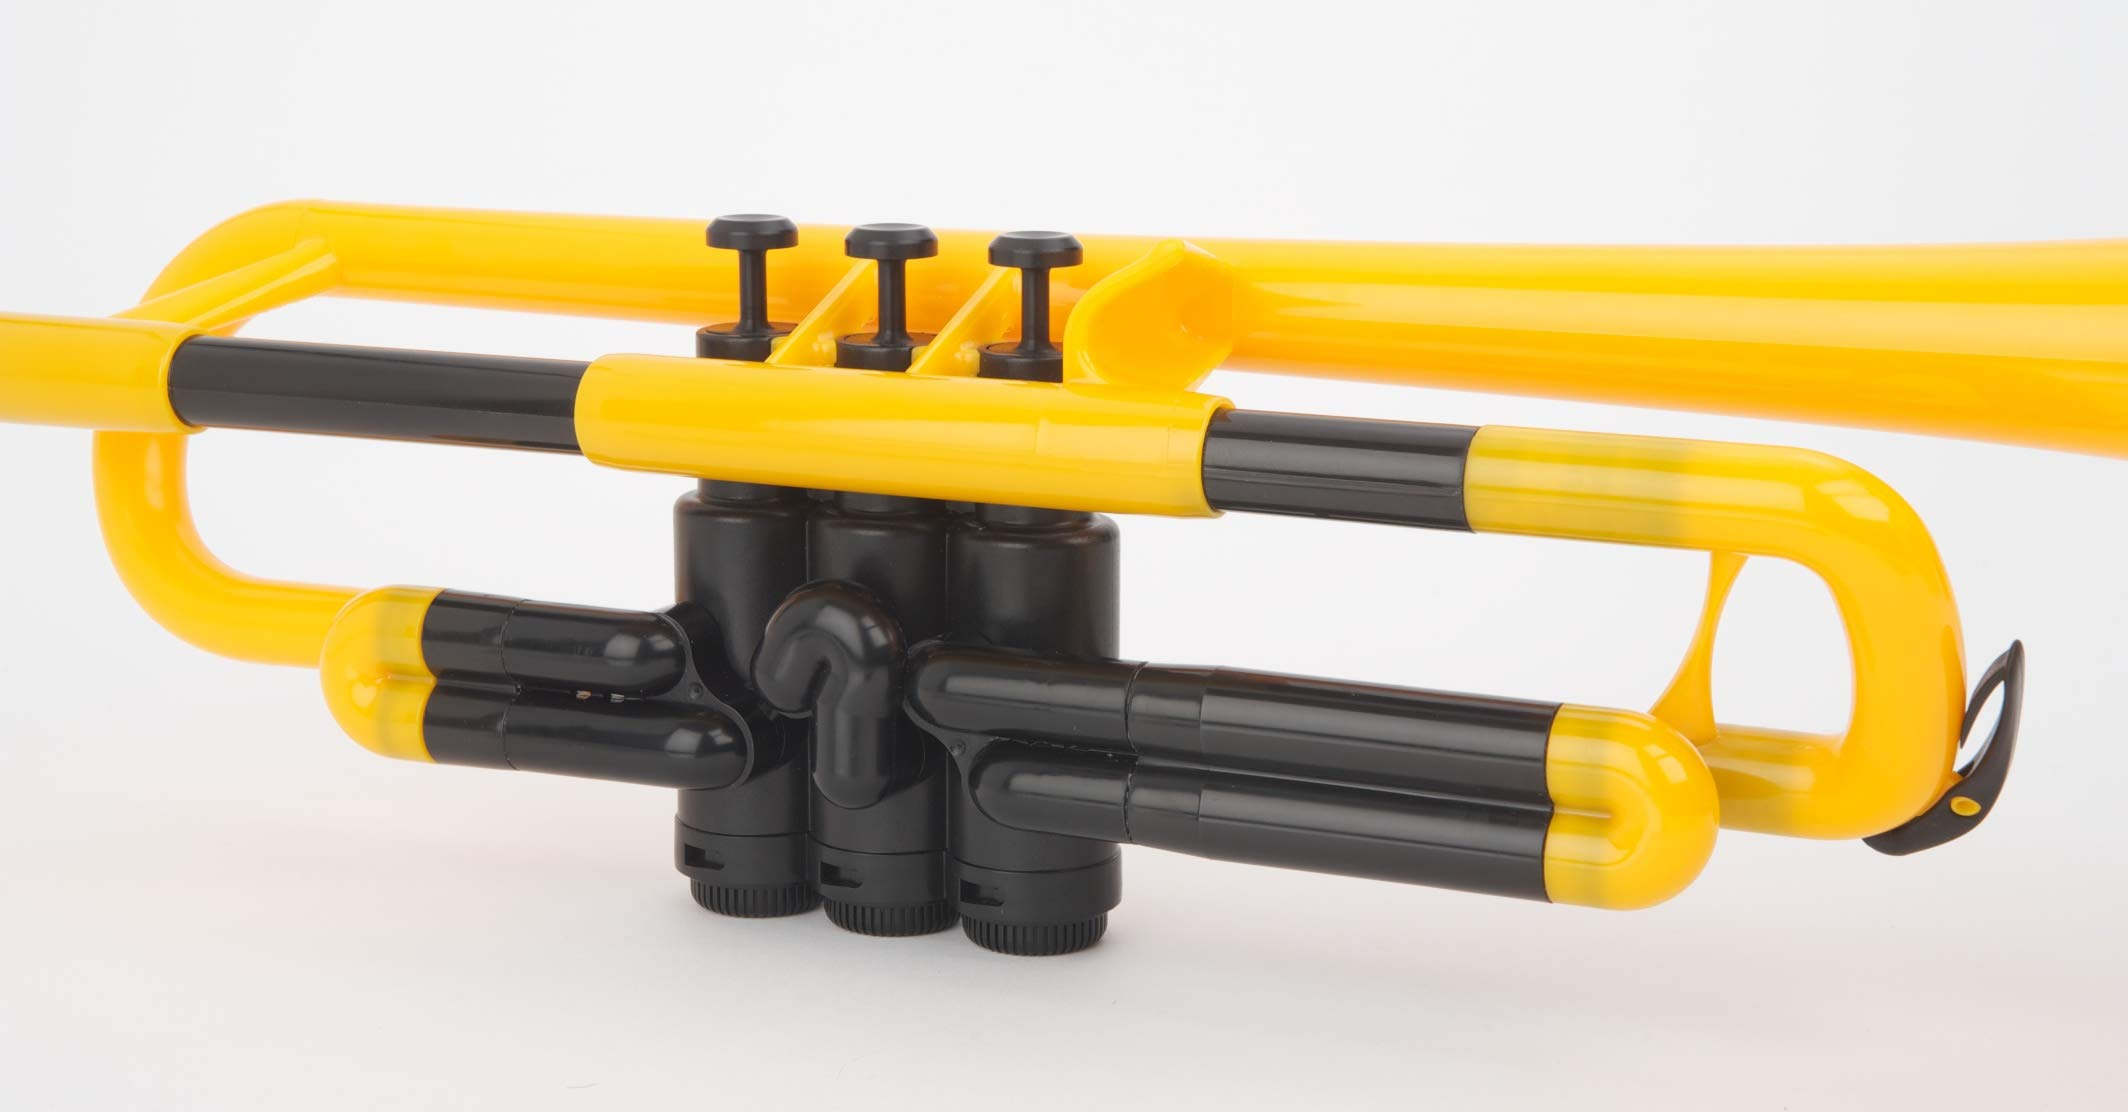 pBone Jiggs pTrumpet Plastic Trumpet w/Gig Bag and 3C and 5C Mouthpieces, Yellow, PTRUMPET1Y) by pBone (Image #7)